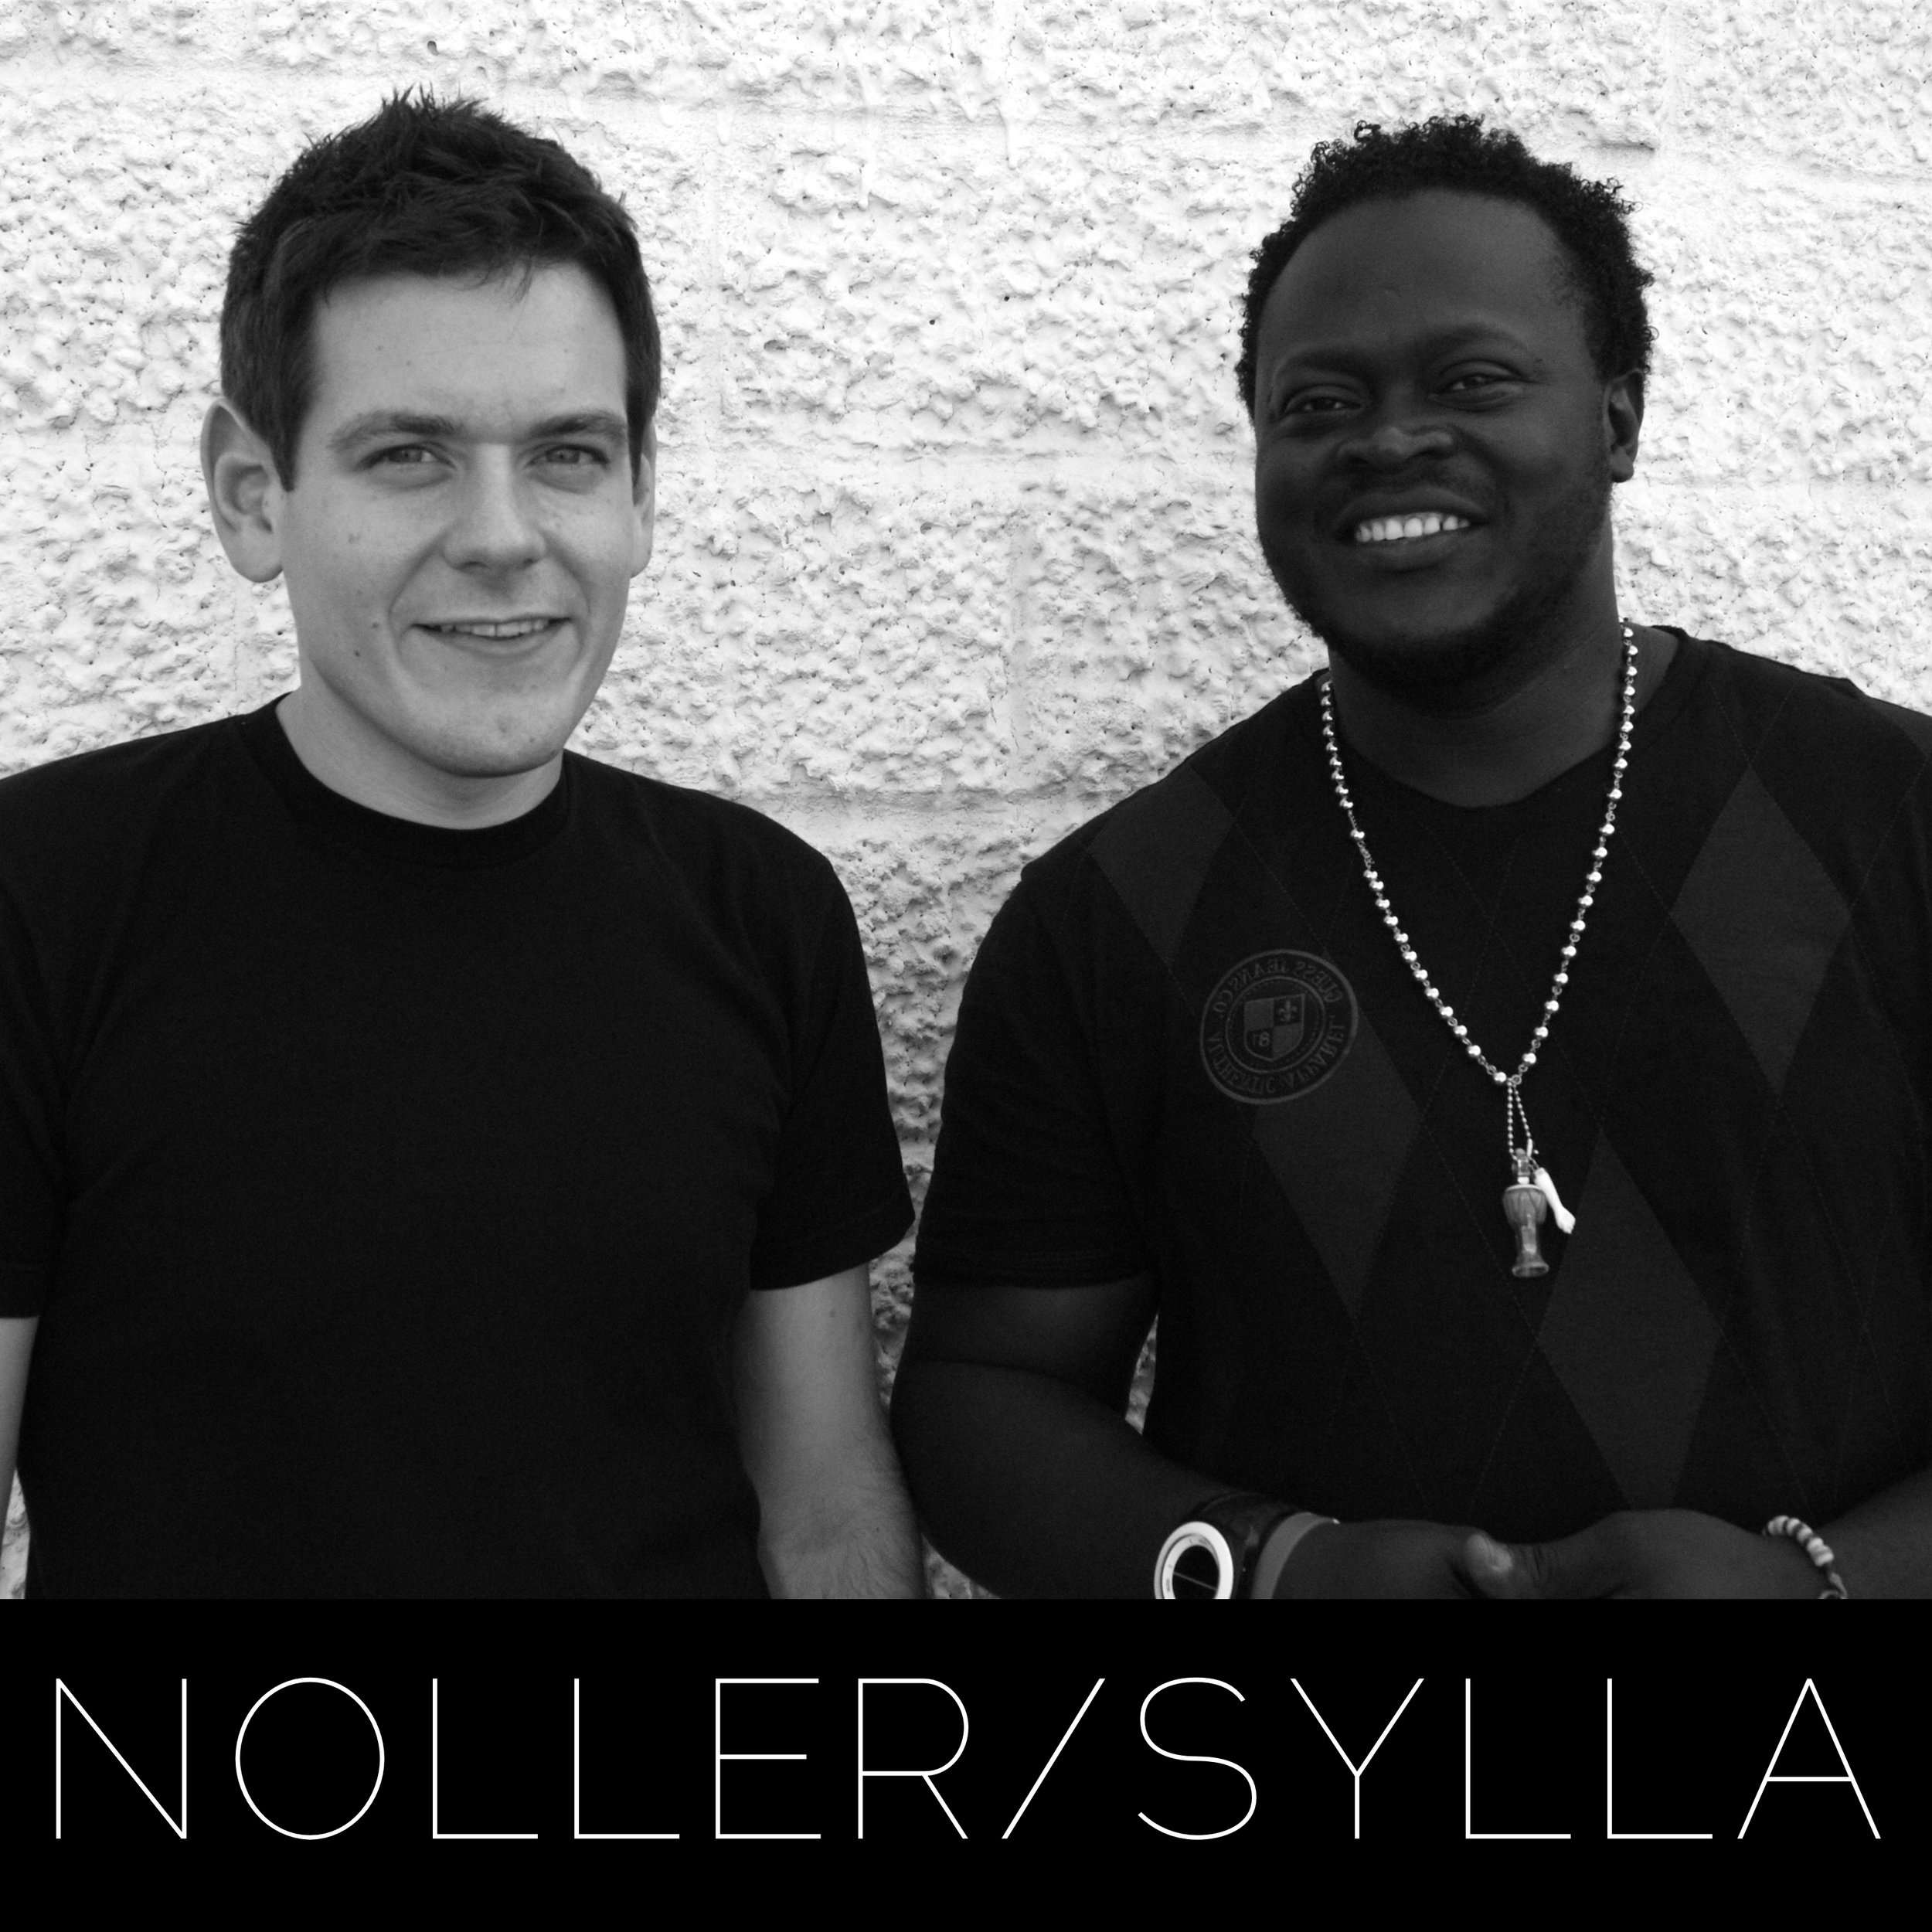 noller_sylla_album_art.jpeg